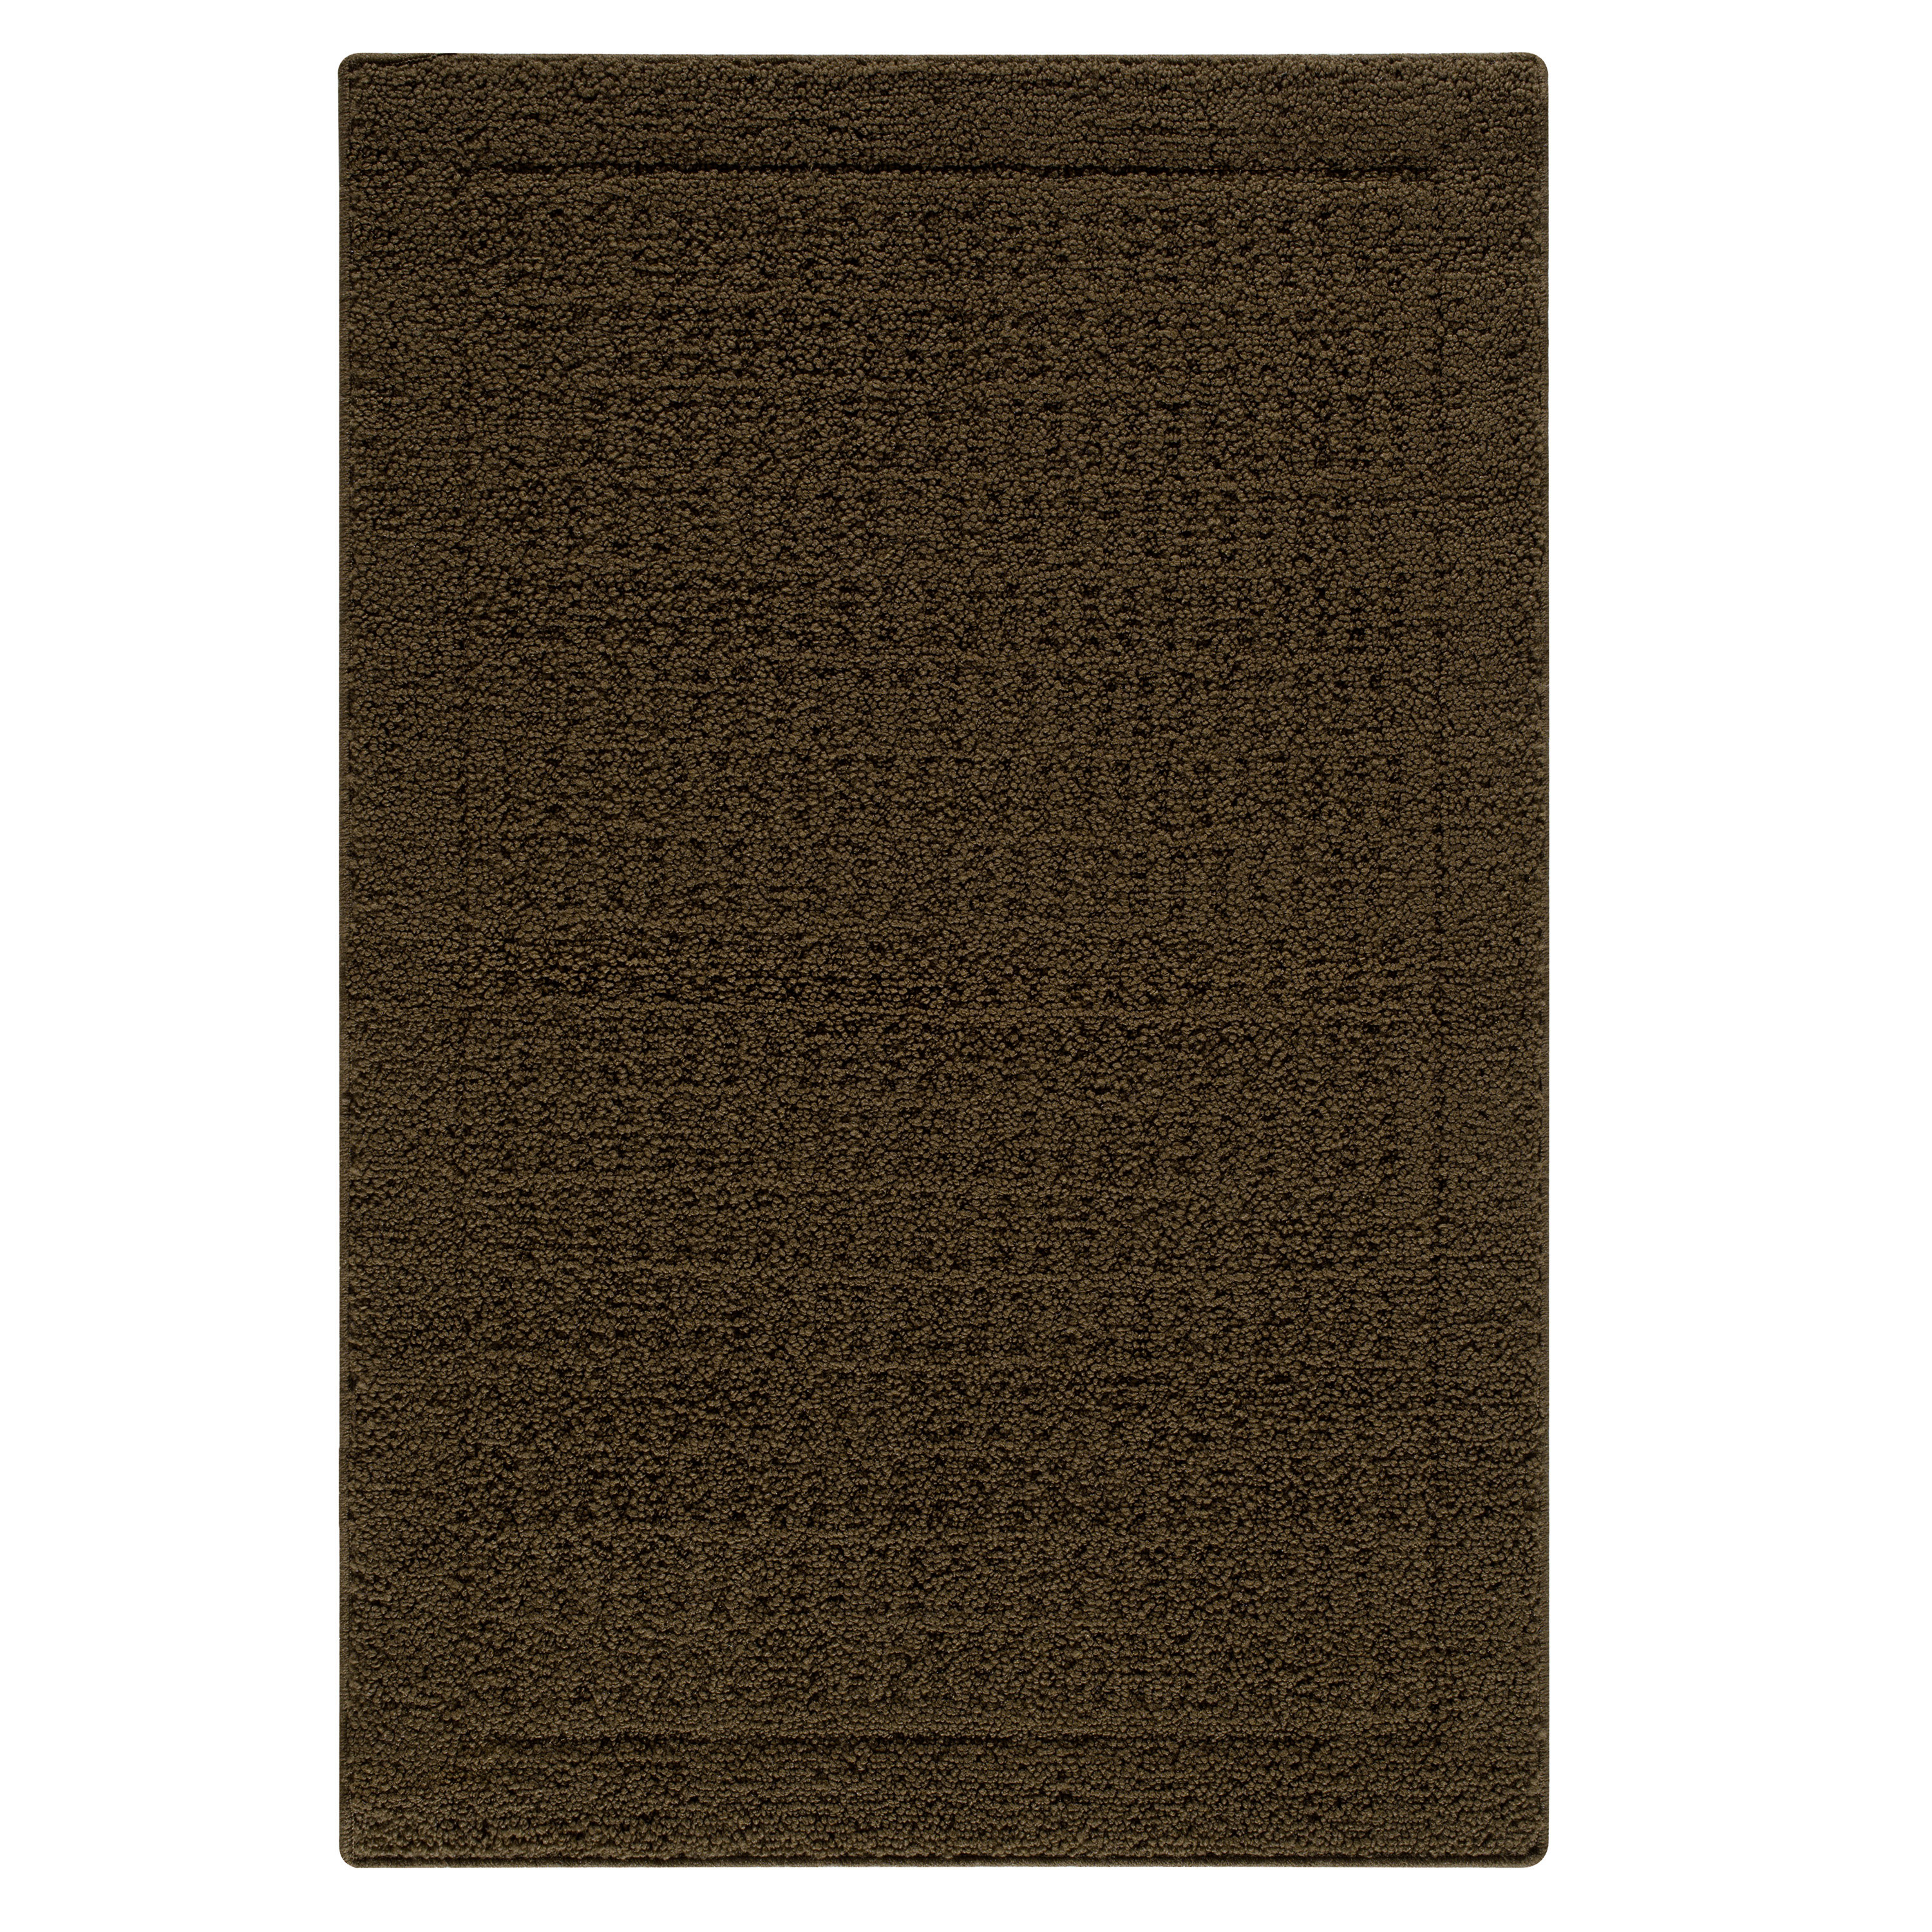 Mainstays Dylan Area Rug or Runner Collection, Multiple Sizes